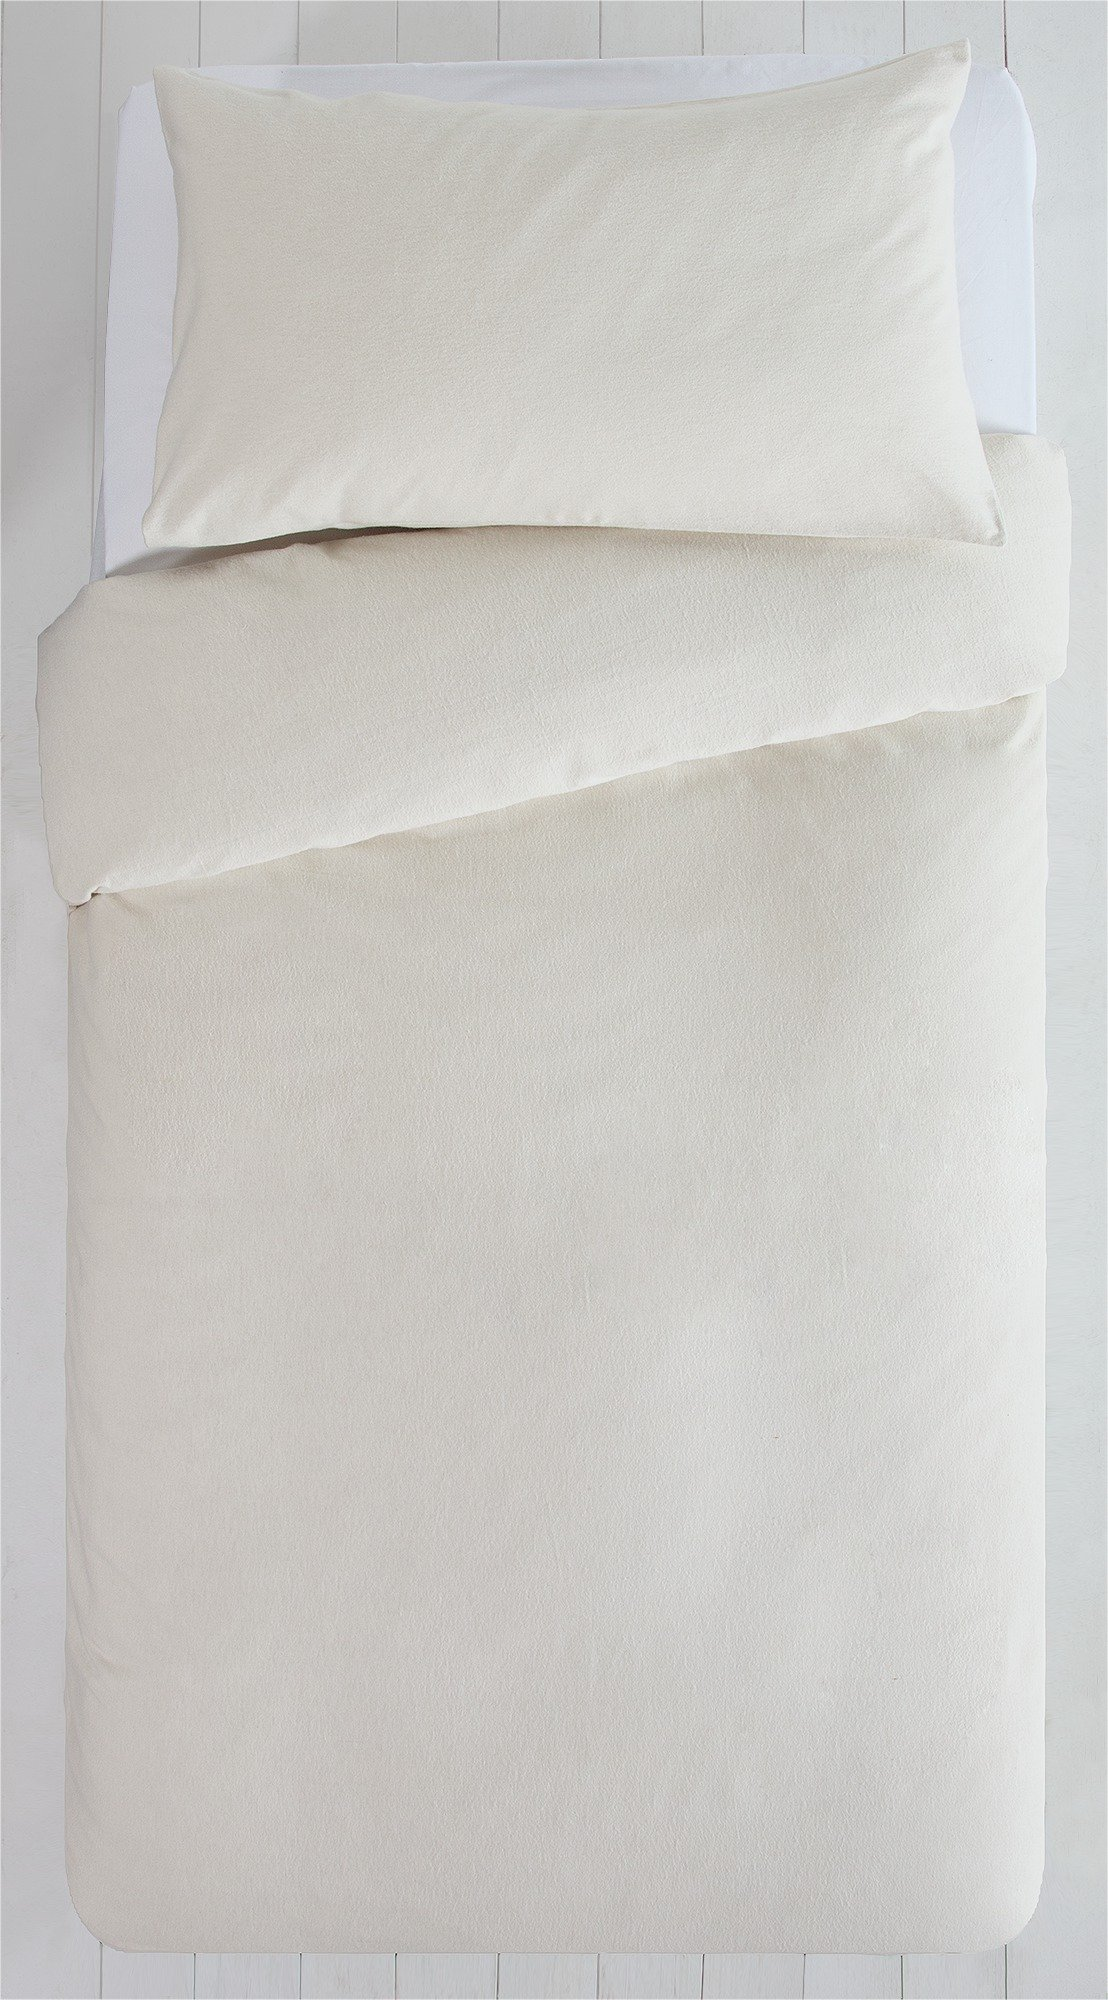 Collection - Cream Brushed Cotton - Bedding Set - Single